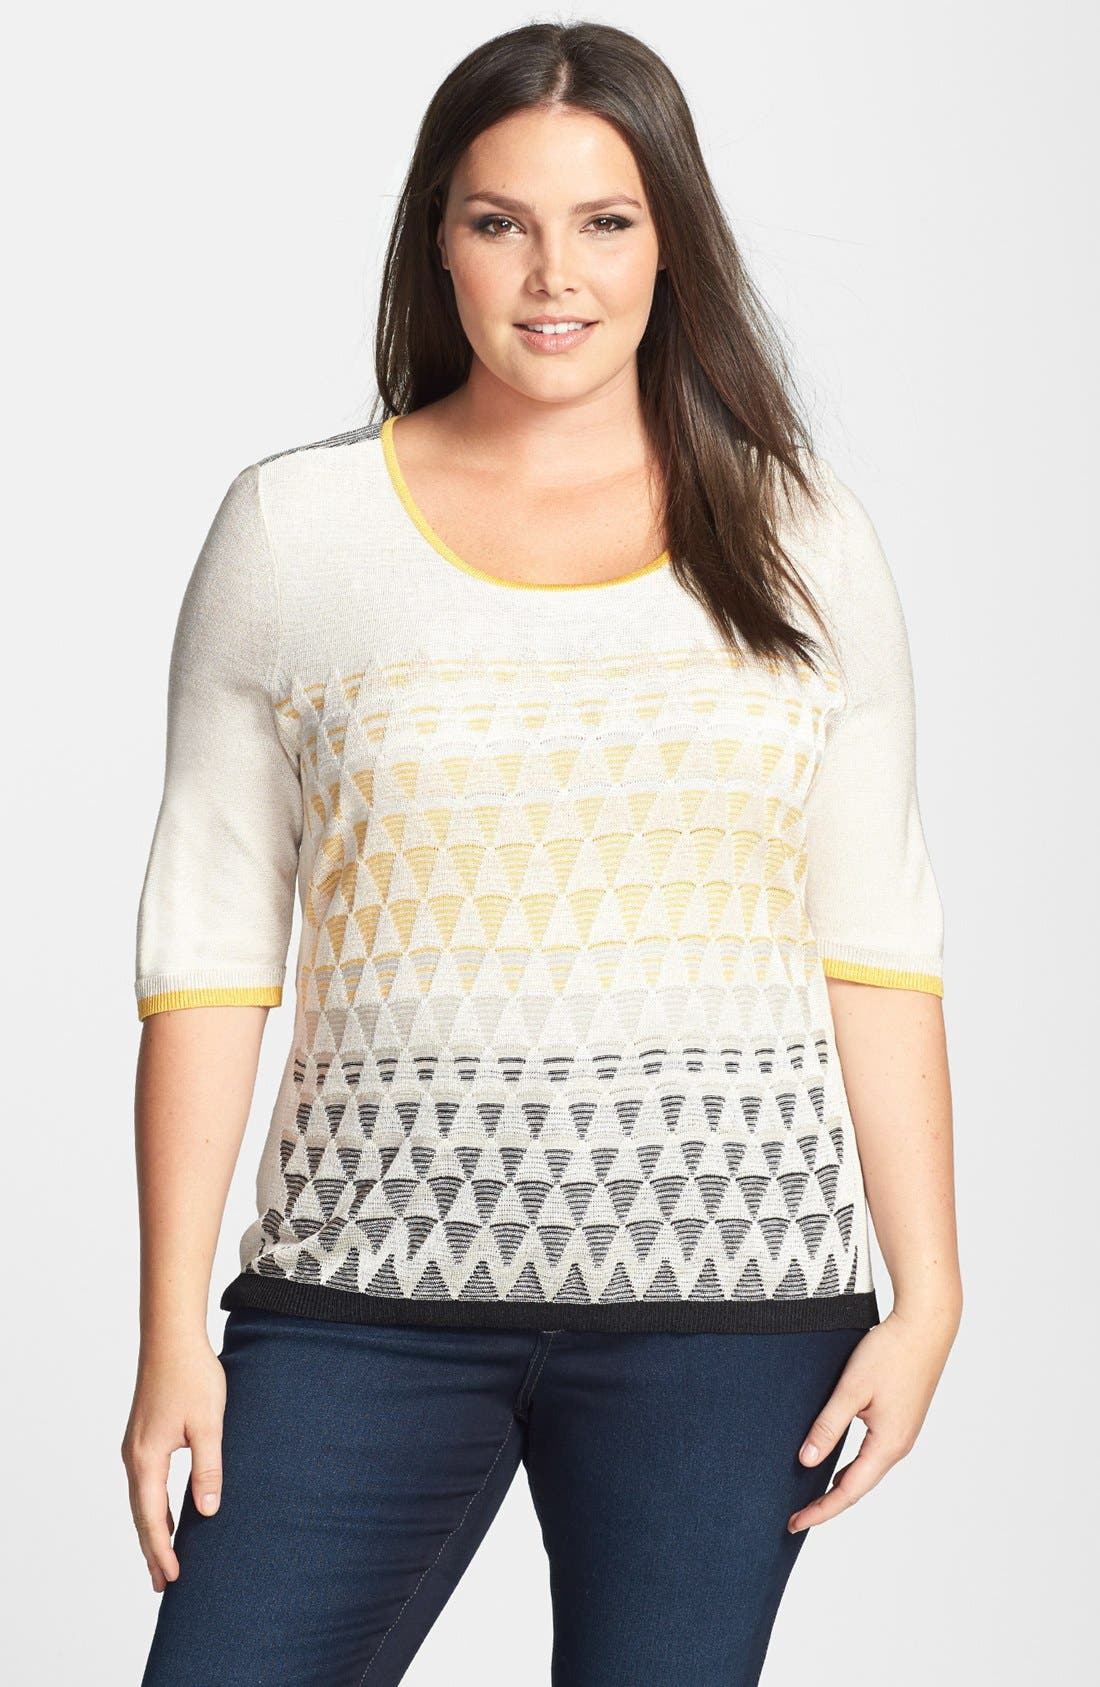 Alternate Image 1 Selected - NIC+ZOE 'Ombréd Angles' Silk Blend Top (Plus Size)